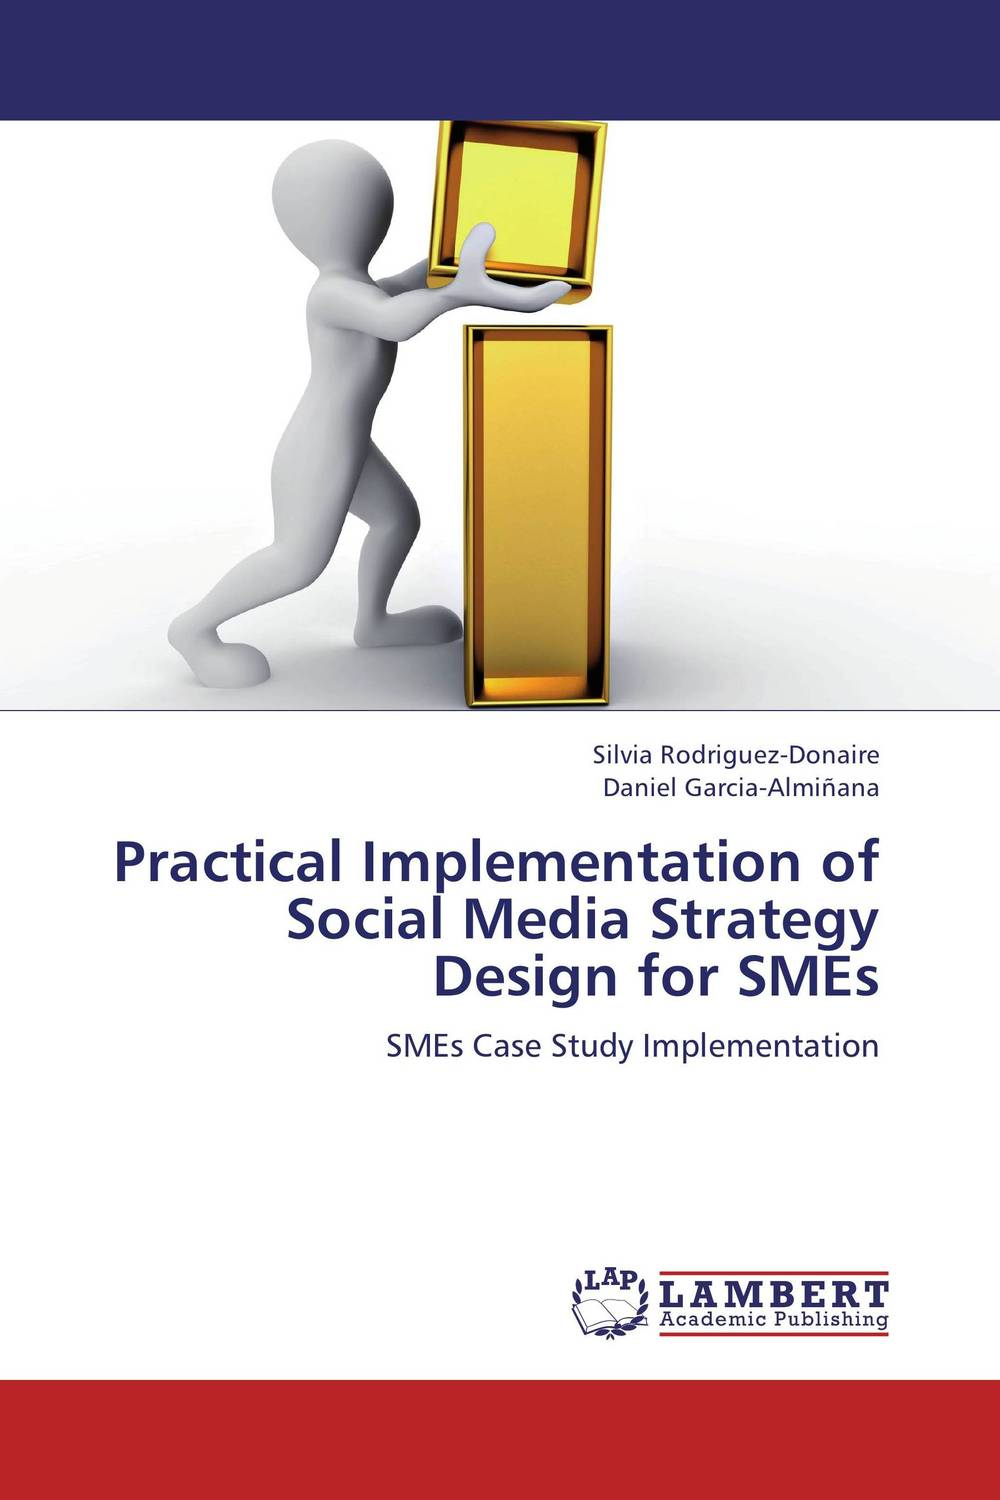 Practical Implementation of Social Media Strategy Design for SMEs i manev social capital and strategy effectiveness an empirical study of entrepreneurial ventures in a transition economy